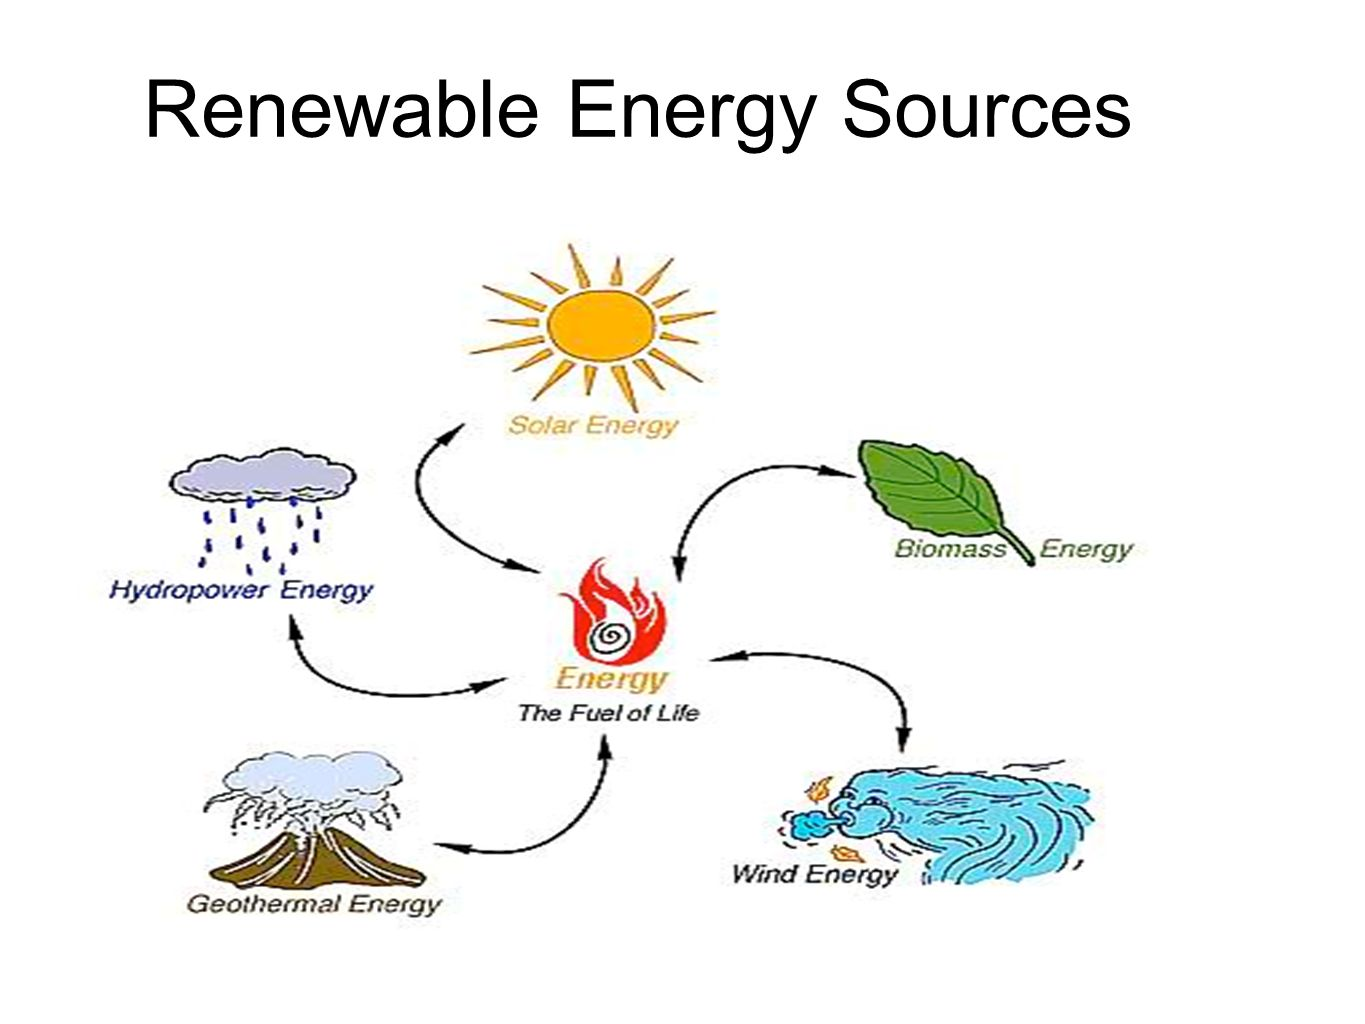 renewable alternative energies sources Commonly known alternative energy sources: hydroelectric energy, solar energy, wind energy, biomass energy, geothermal energy and tidal power.